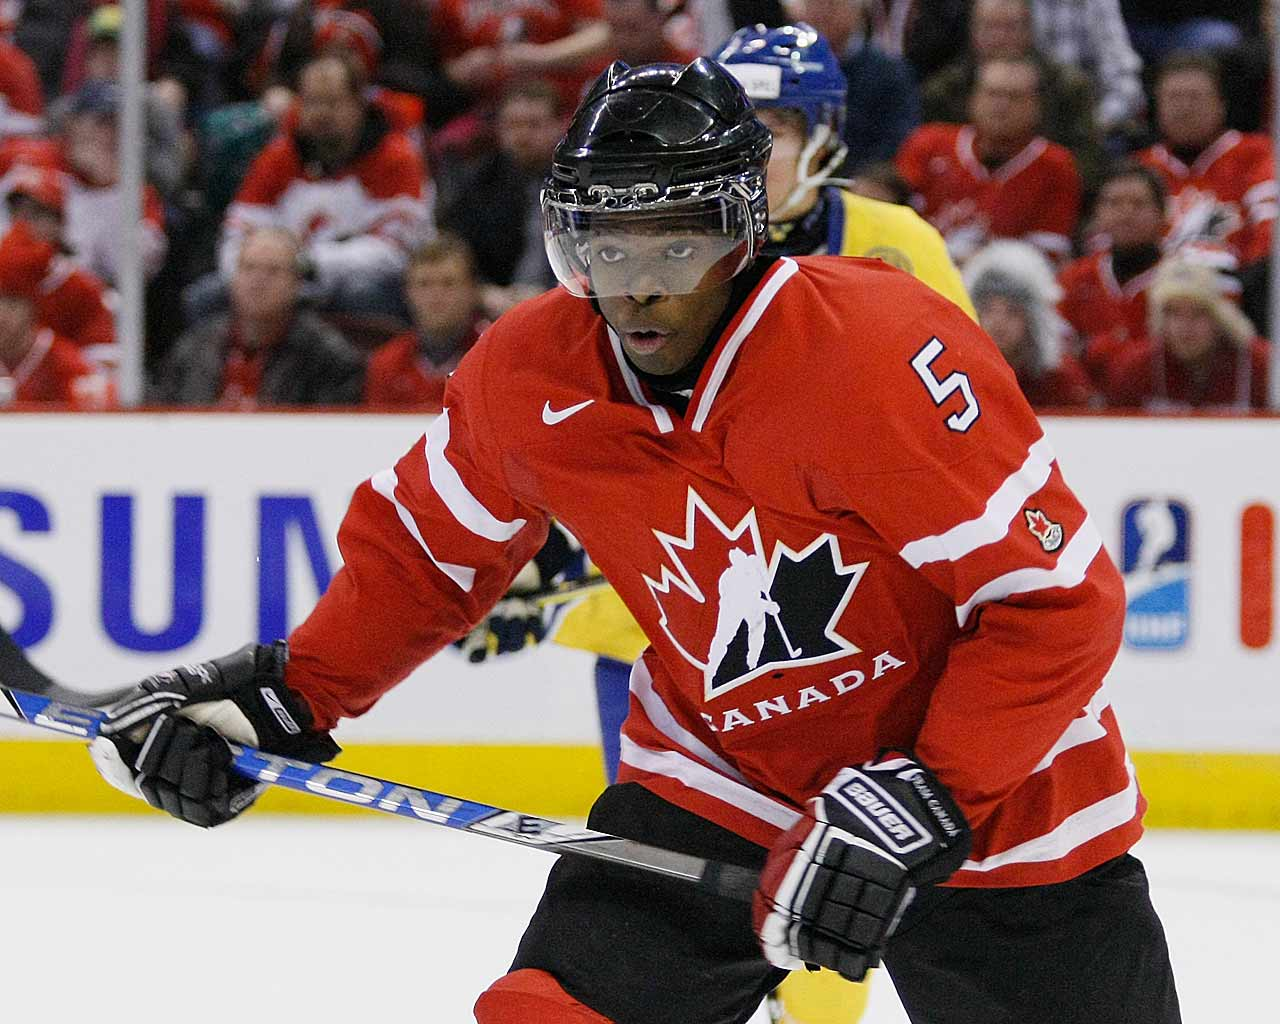 He was a lightning bolt of controversy in the lead-up to Team Canada's roster announcement, a player regarded as its most creative and dangerous offensive weapon on the blueline, but also one that is not trusted by his own coach to play in critical moments. In the end, the Canadian staff decided his speed and playmaking skills could make him a gamebreaker on the big ice. -- Allan Muir